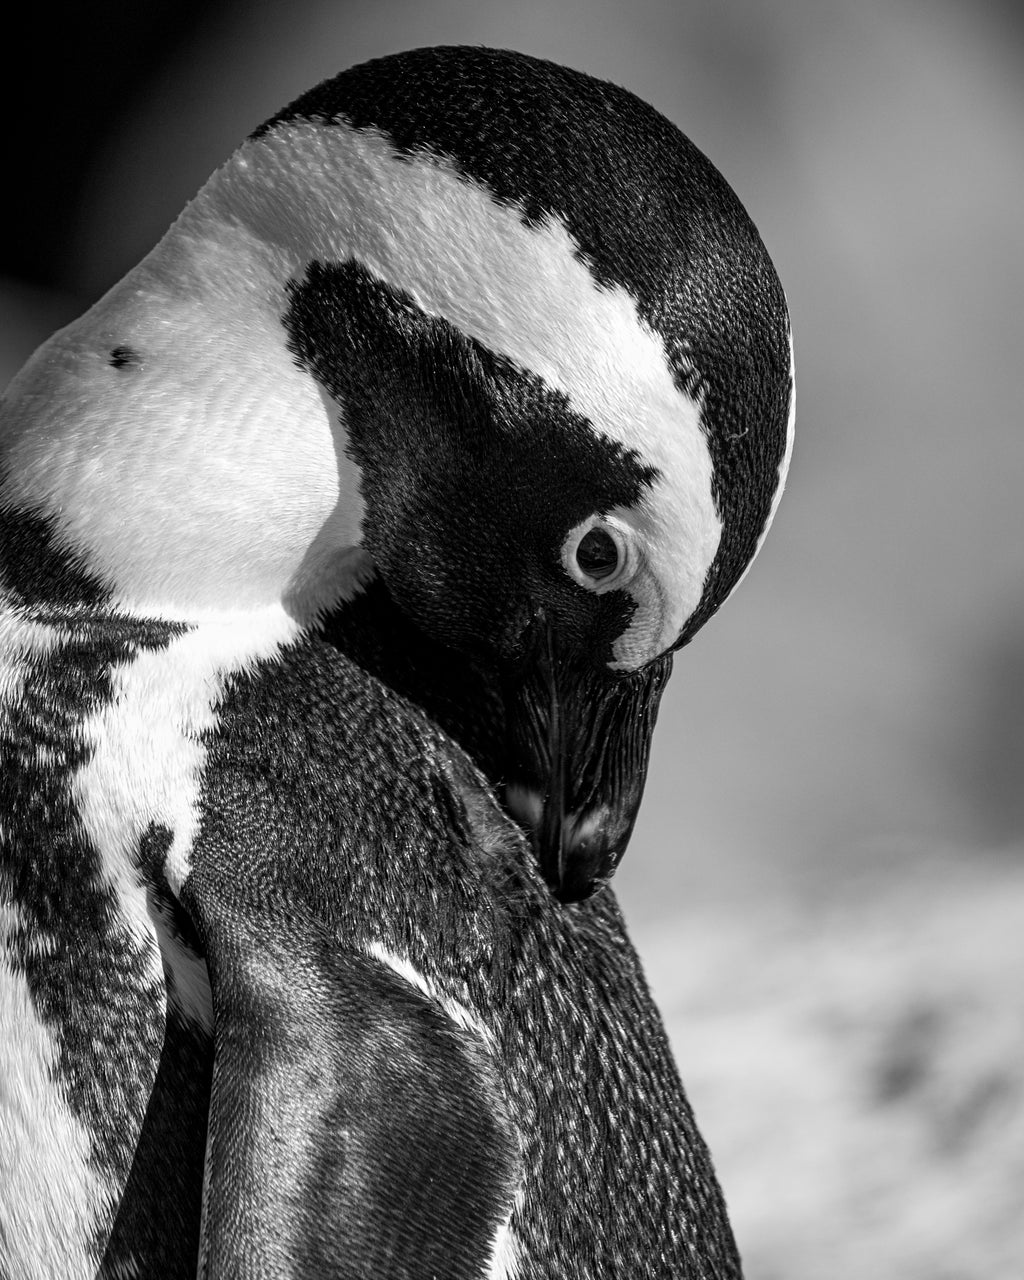 South African penguin, travel wildlife photography, black and white